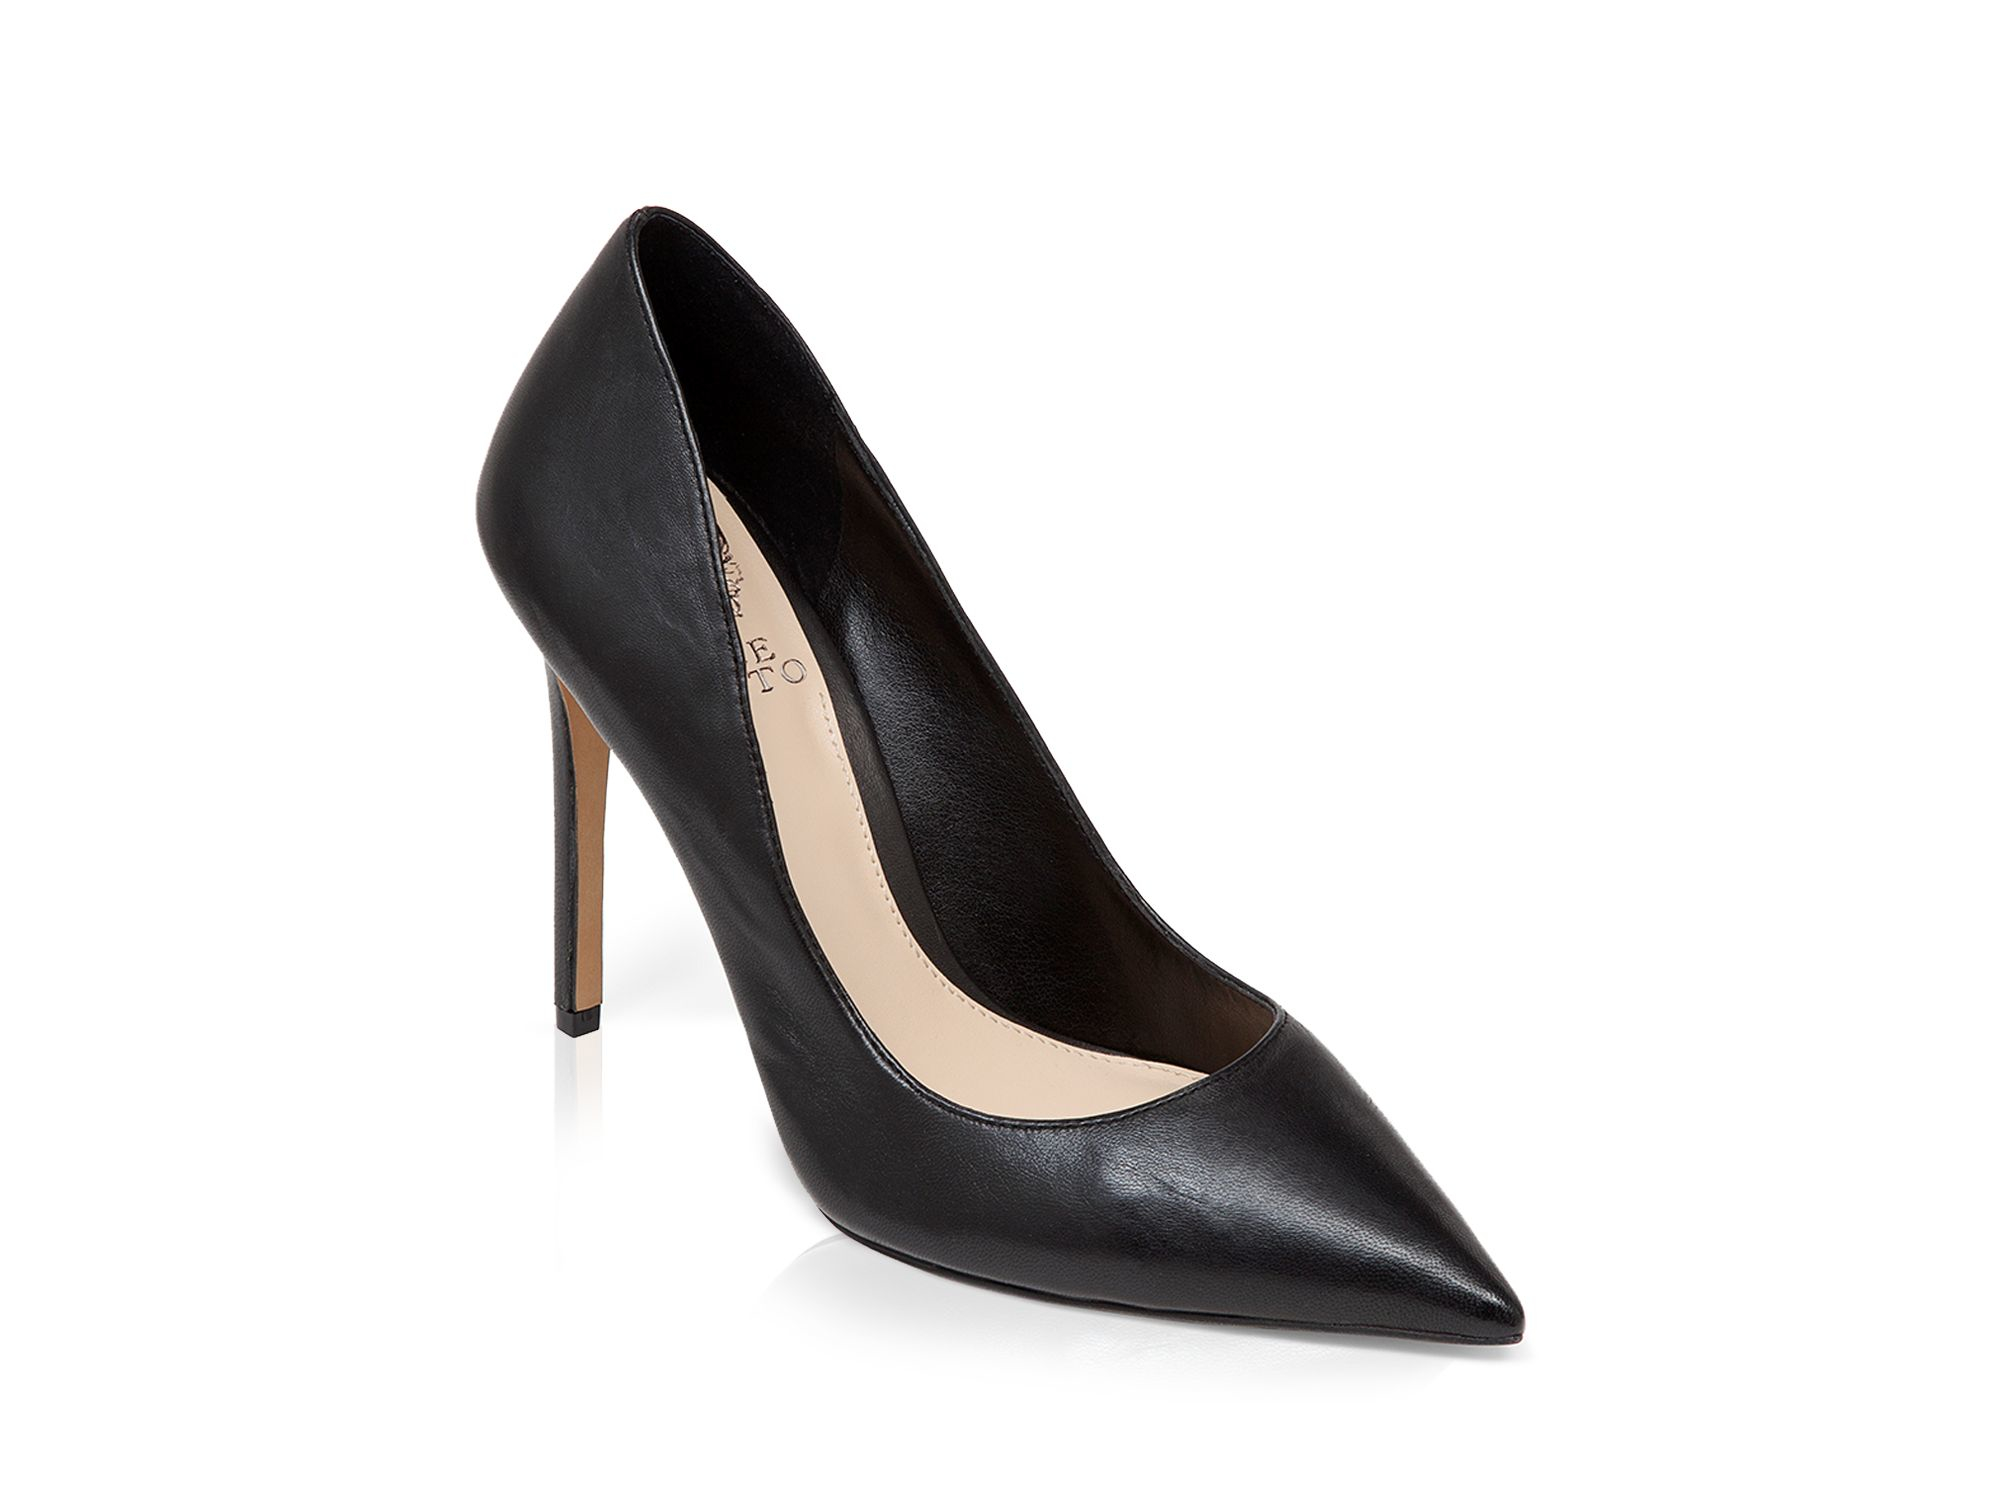 Vince Camuto Pointed Toe Pumps Norida High Heel In Black